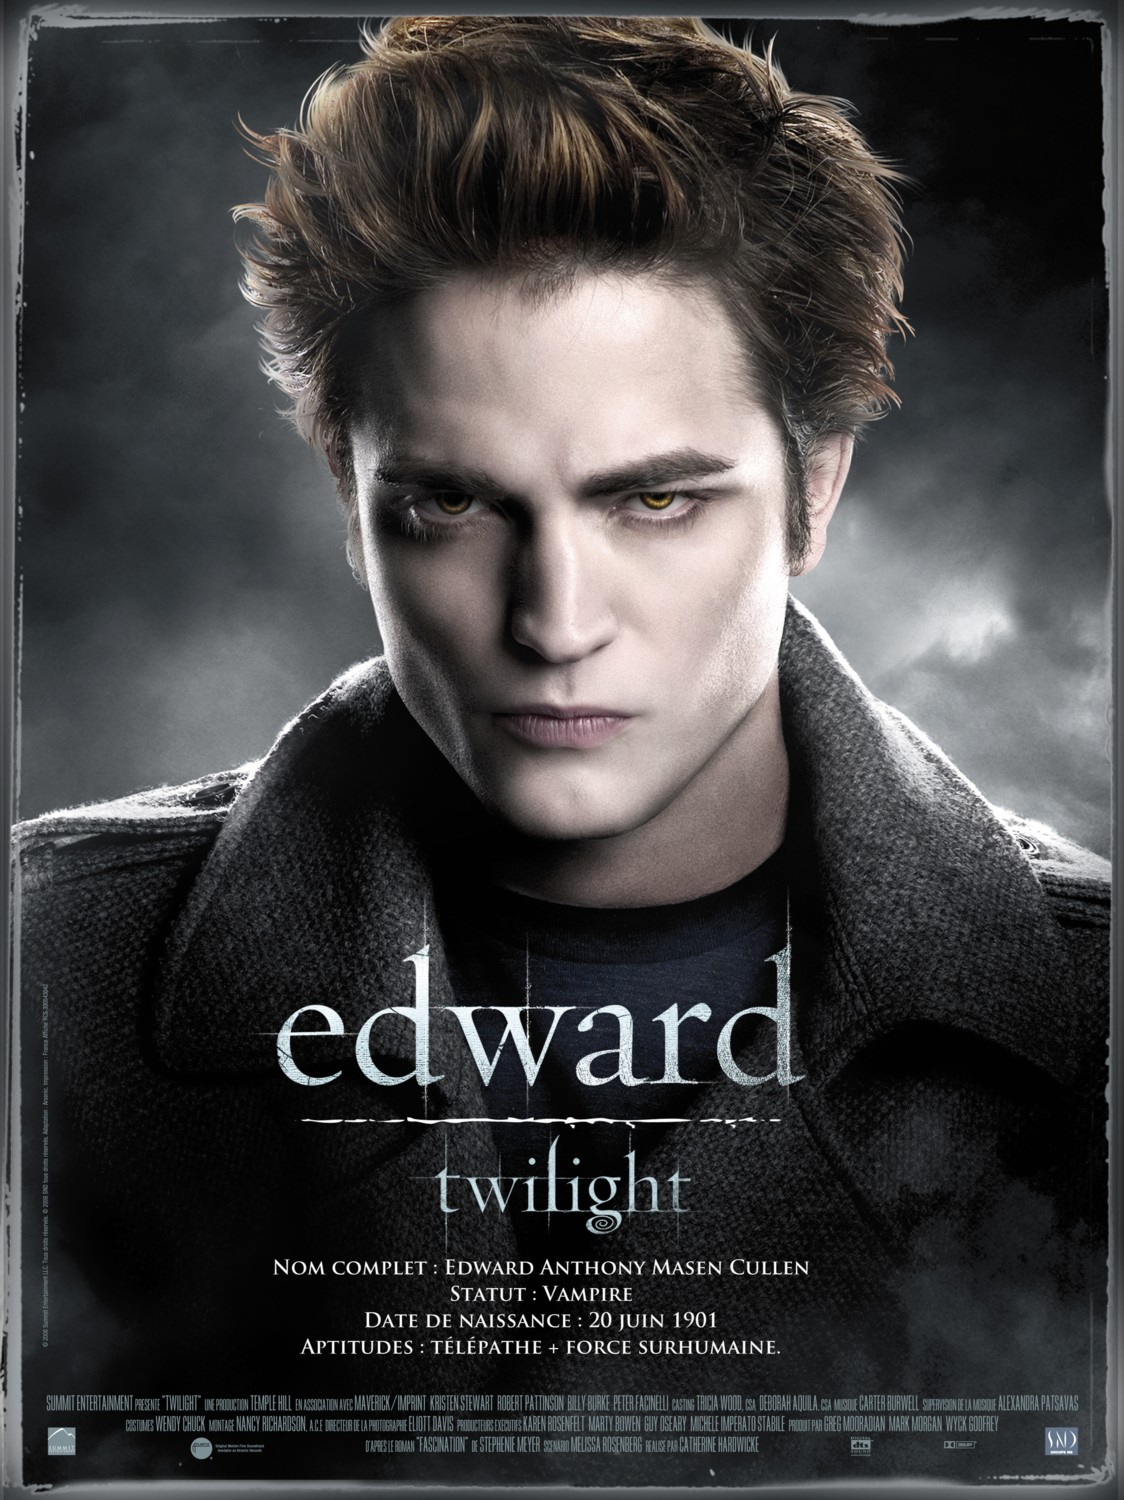 Edward cullen mania twilight le blog for Twilight edward photos